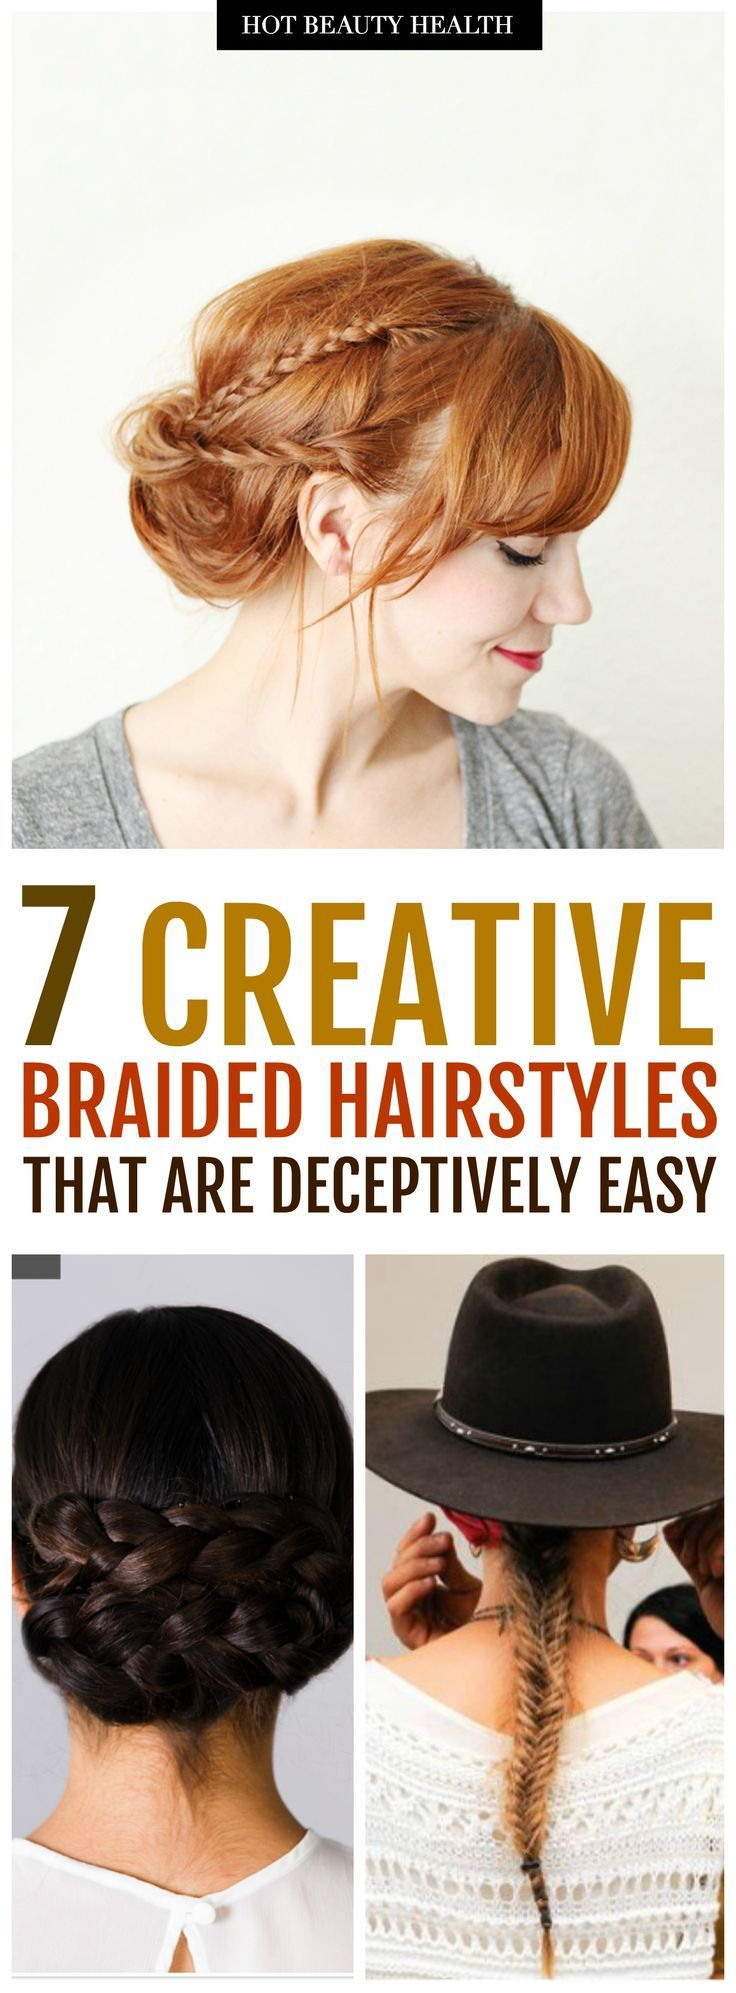 creative braided hairstyles that are deceptively easy hairstyles